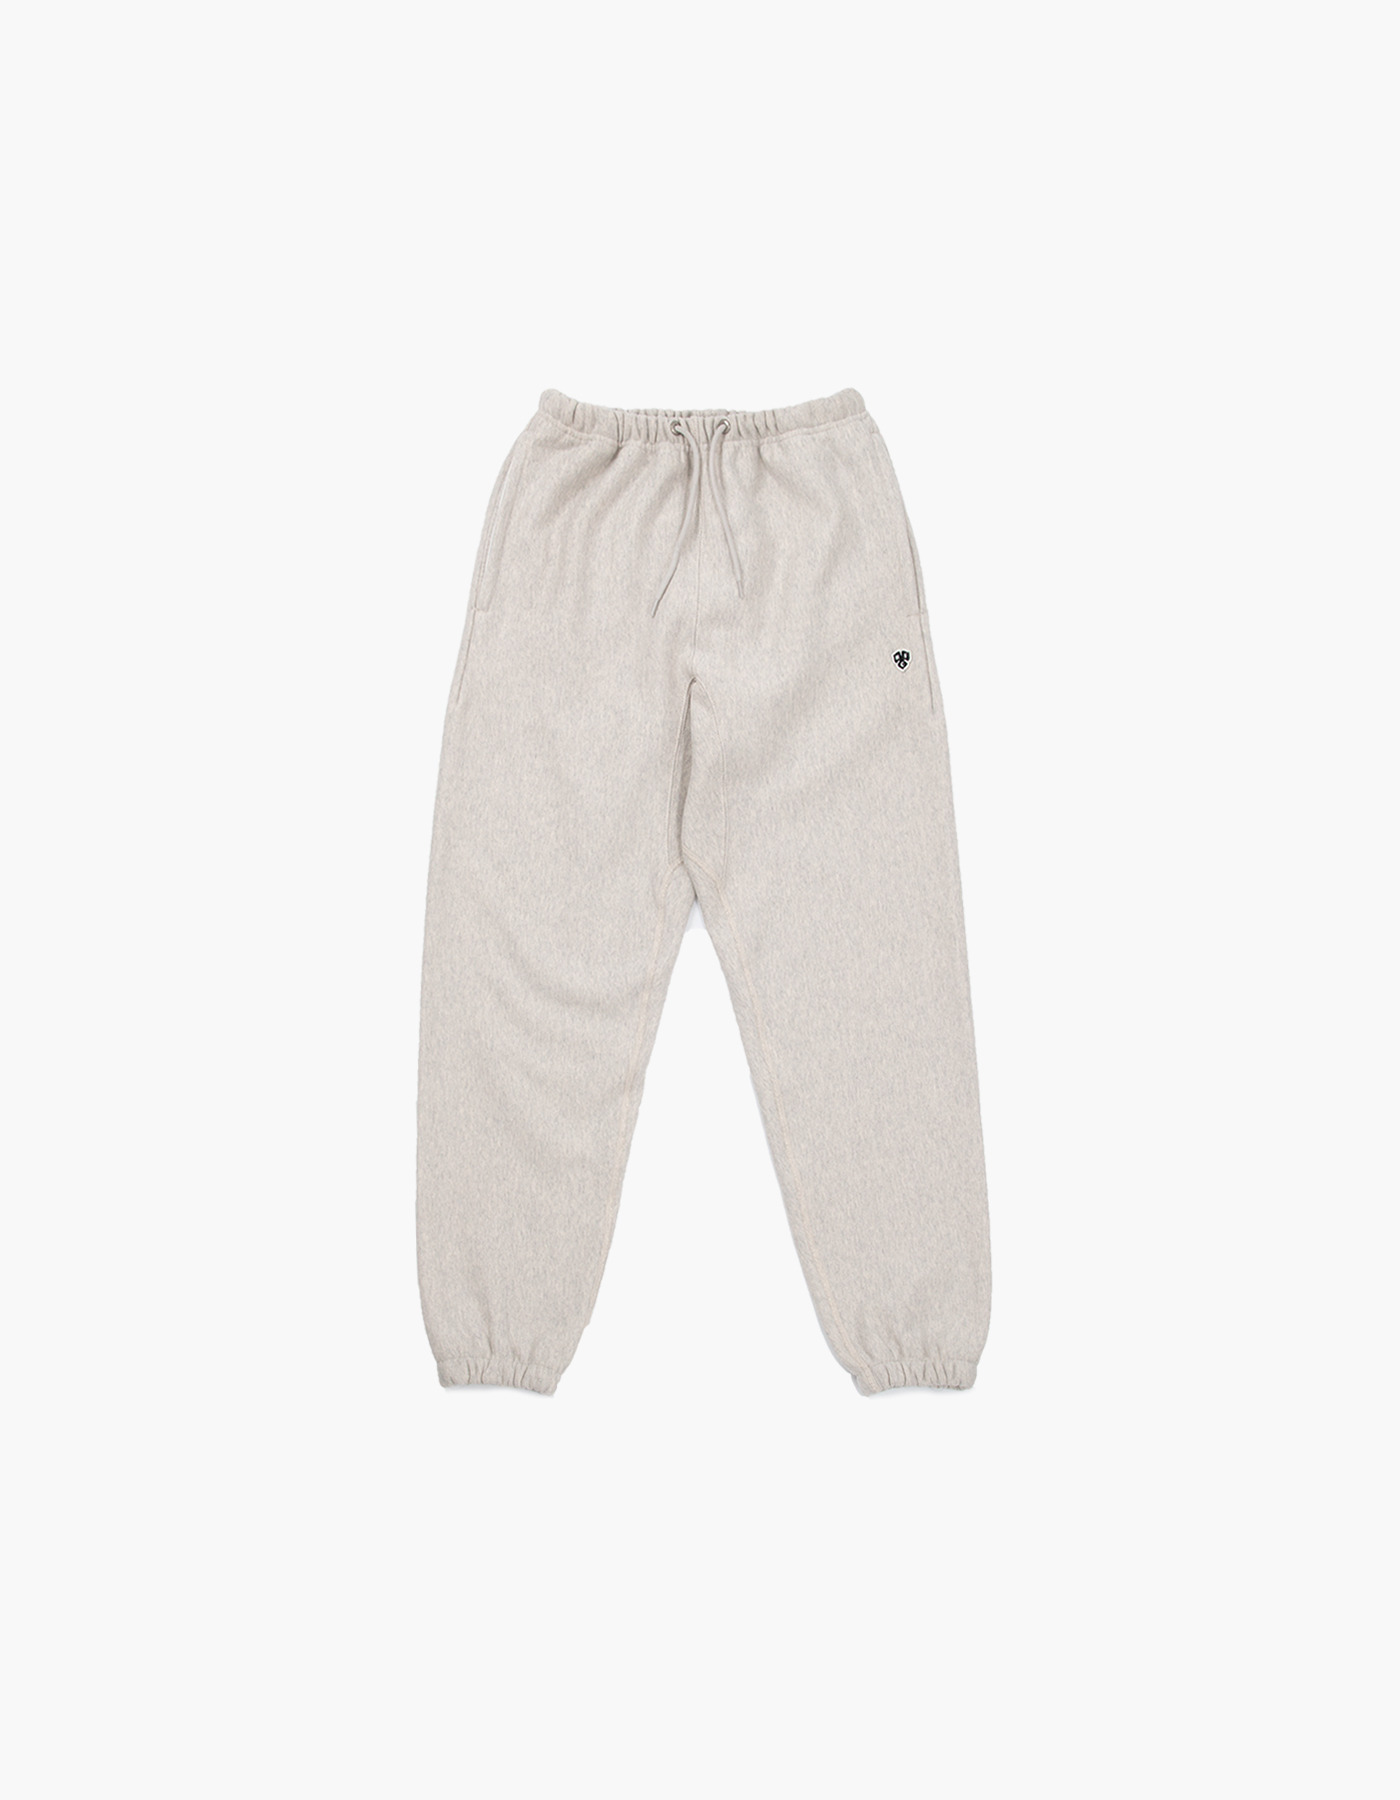 231 HFC SWEATPANTS / M.GREY (1%)